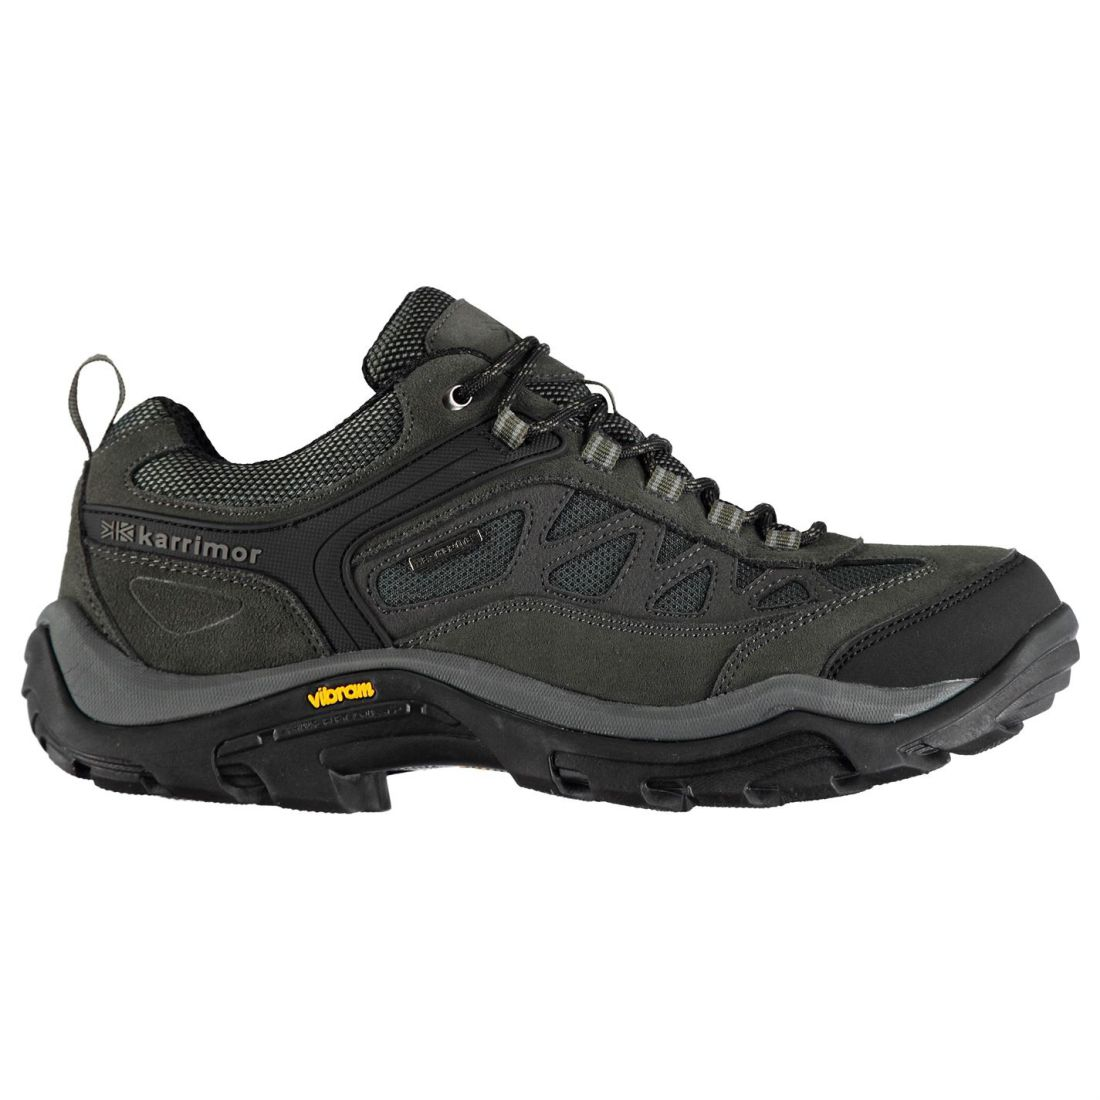 Walking Aspen Repellent Gents Mens Karrimor Water Laces Low Shoes Charcoal Fastened UwfqPaE